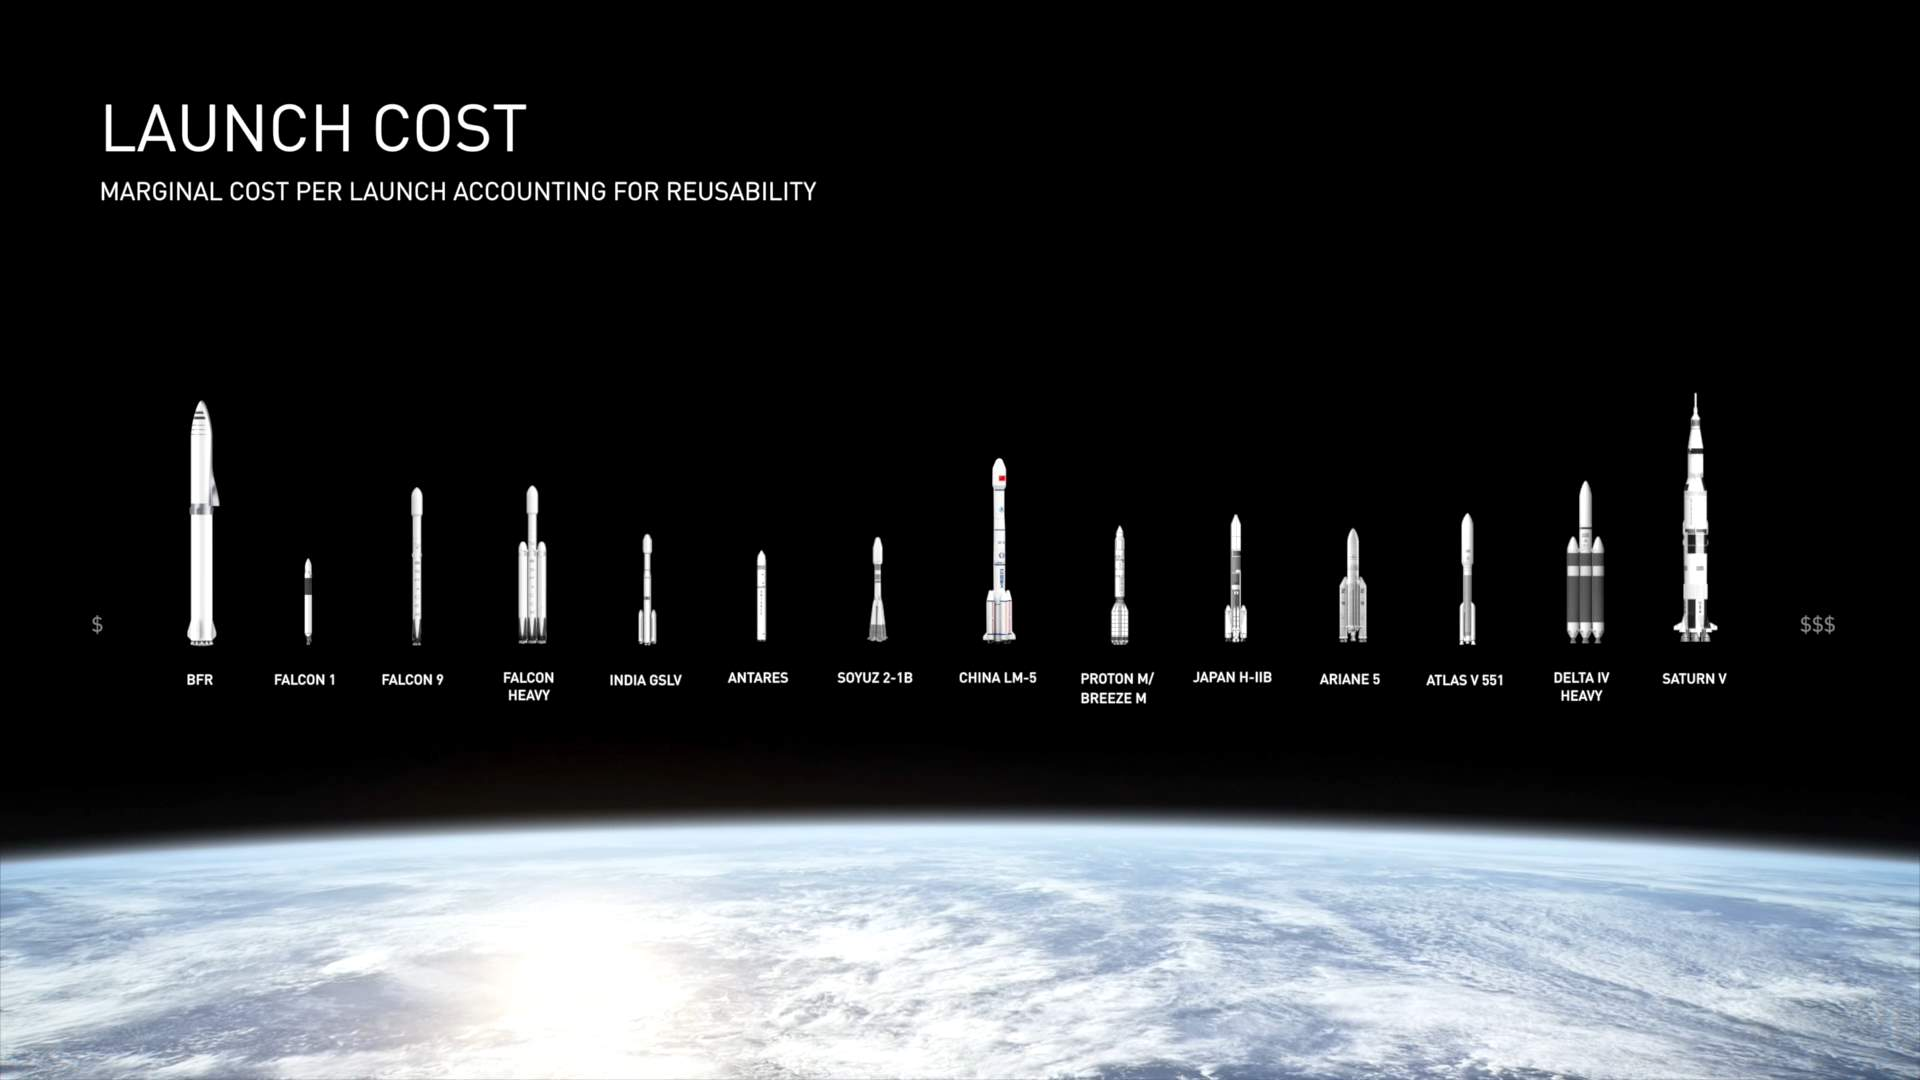 Rocket launch costs